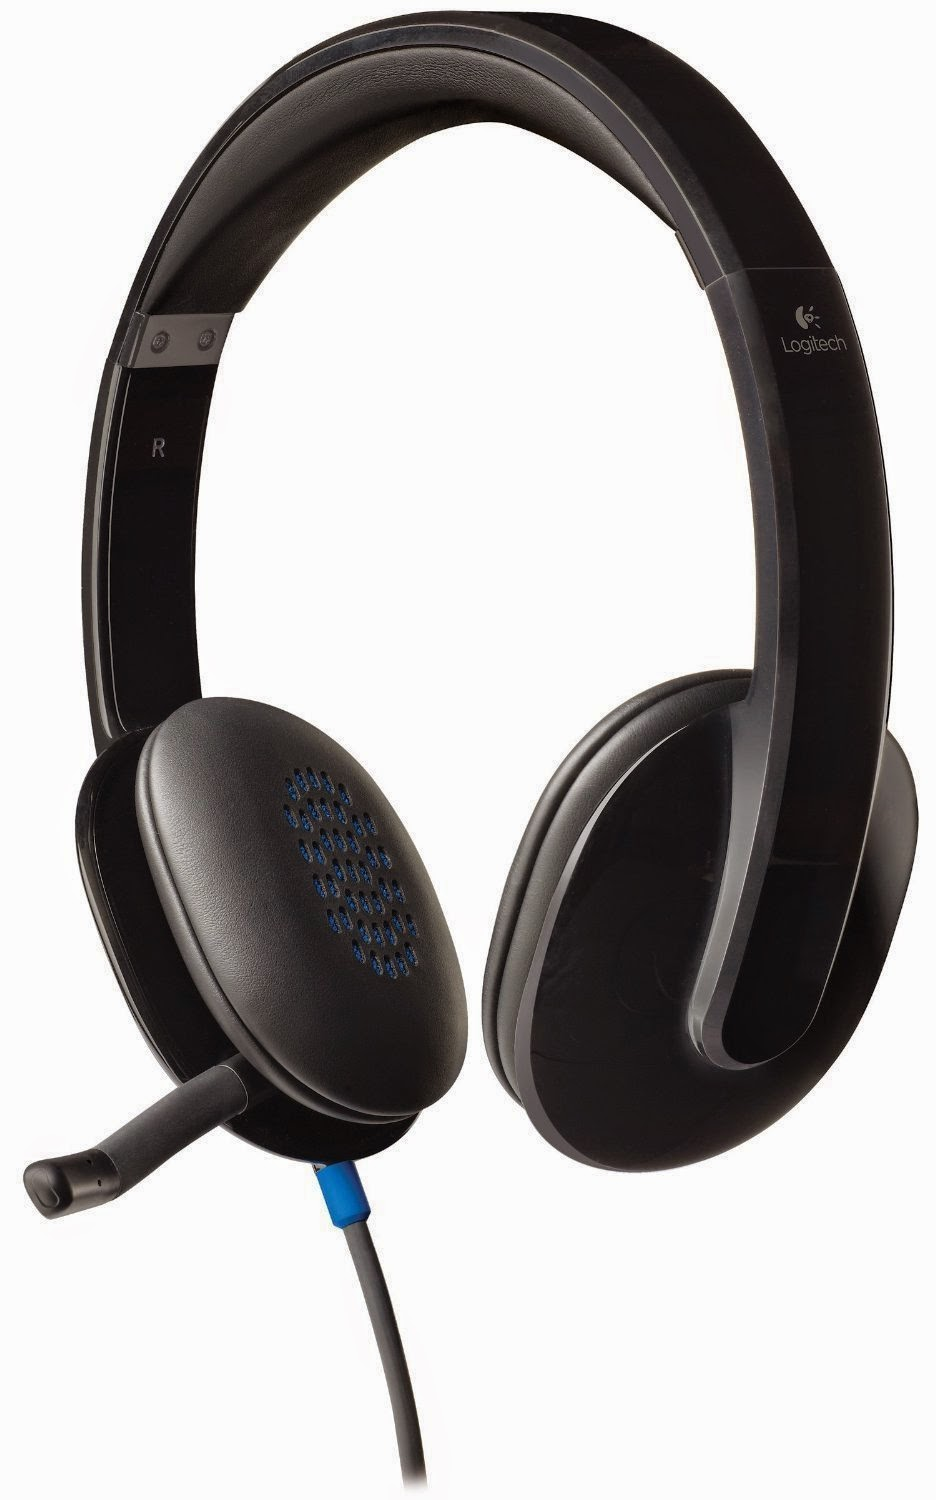 Buy Logitech h540 USB headset Rs. 2,299 only at Amazon.